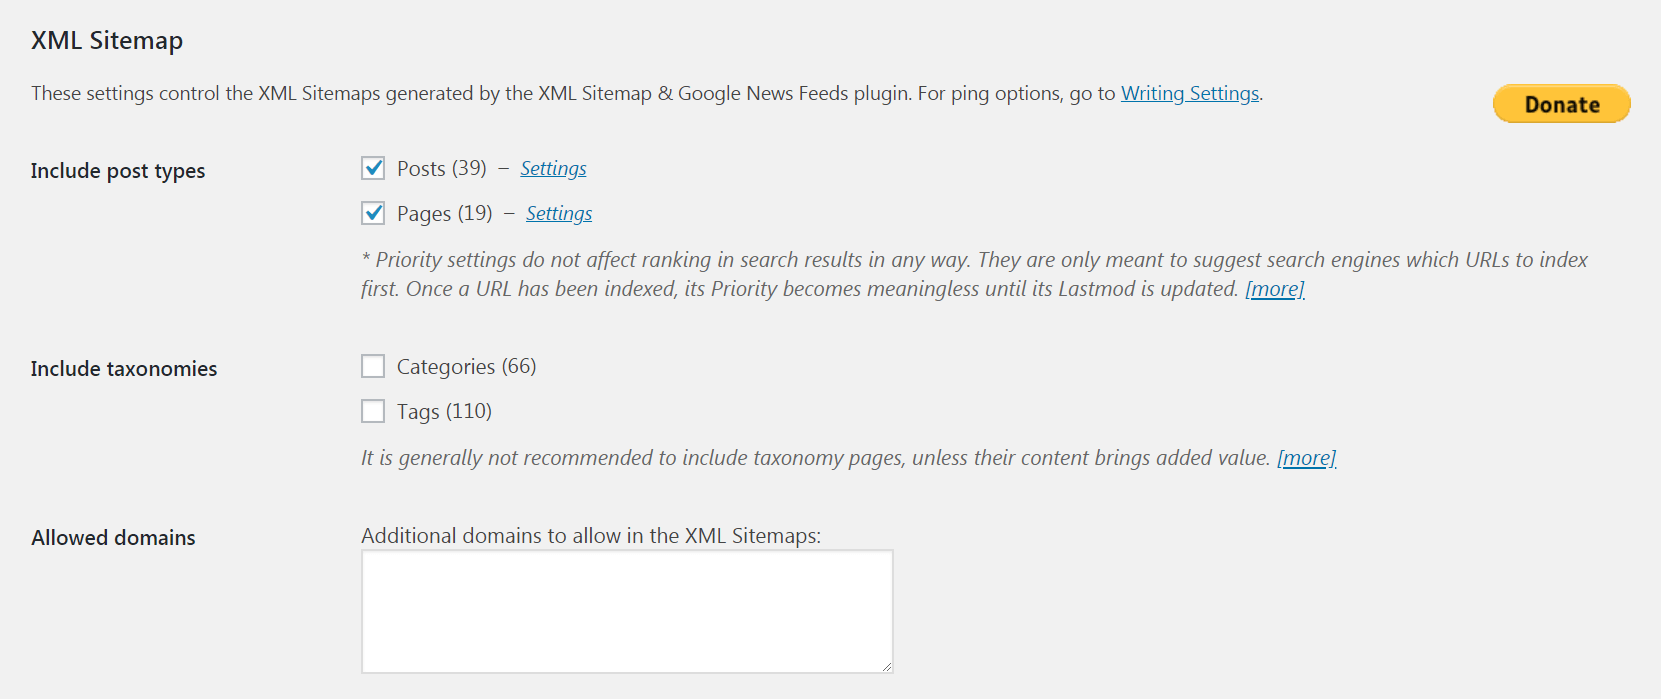 The advanced settings in XML Sitemap & Google News Feeds.